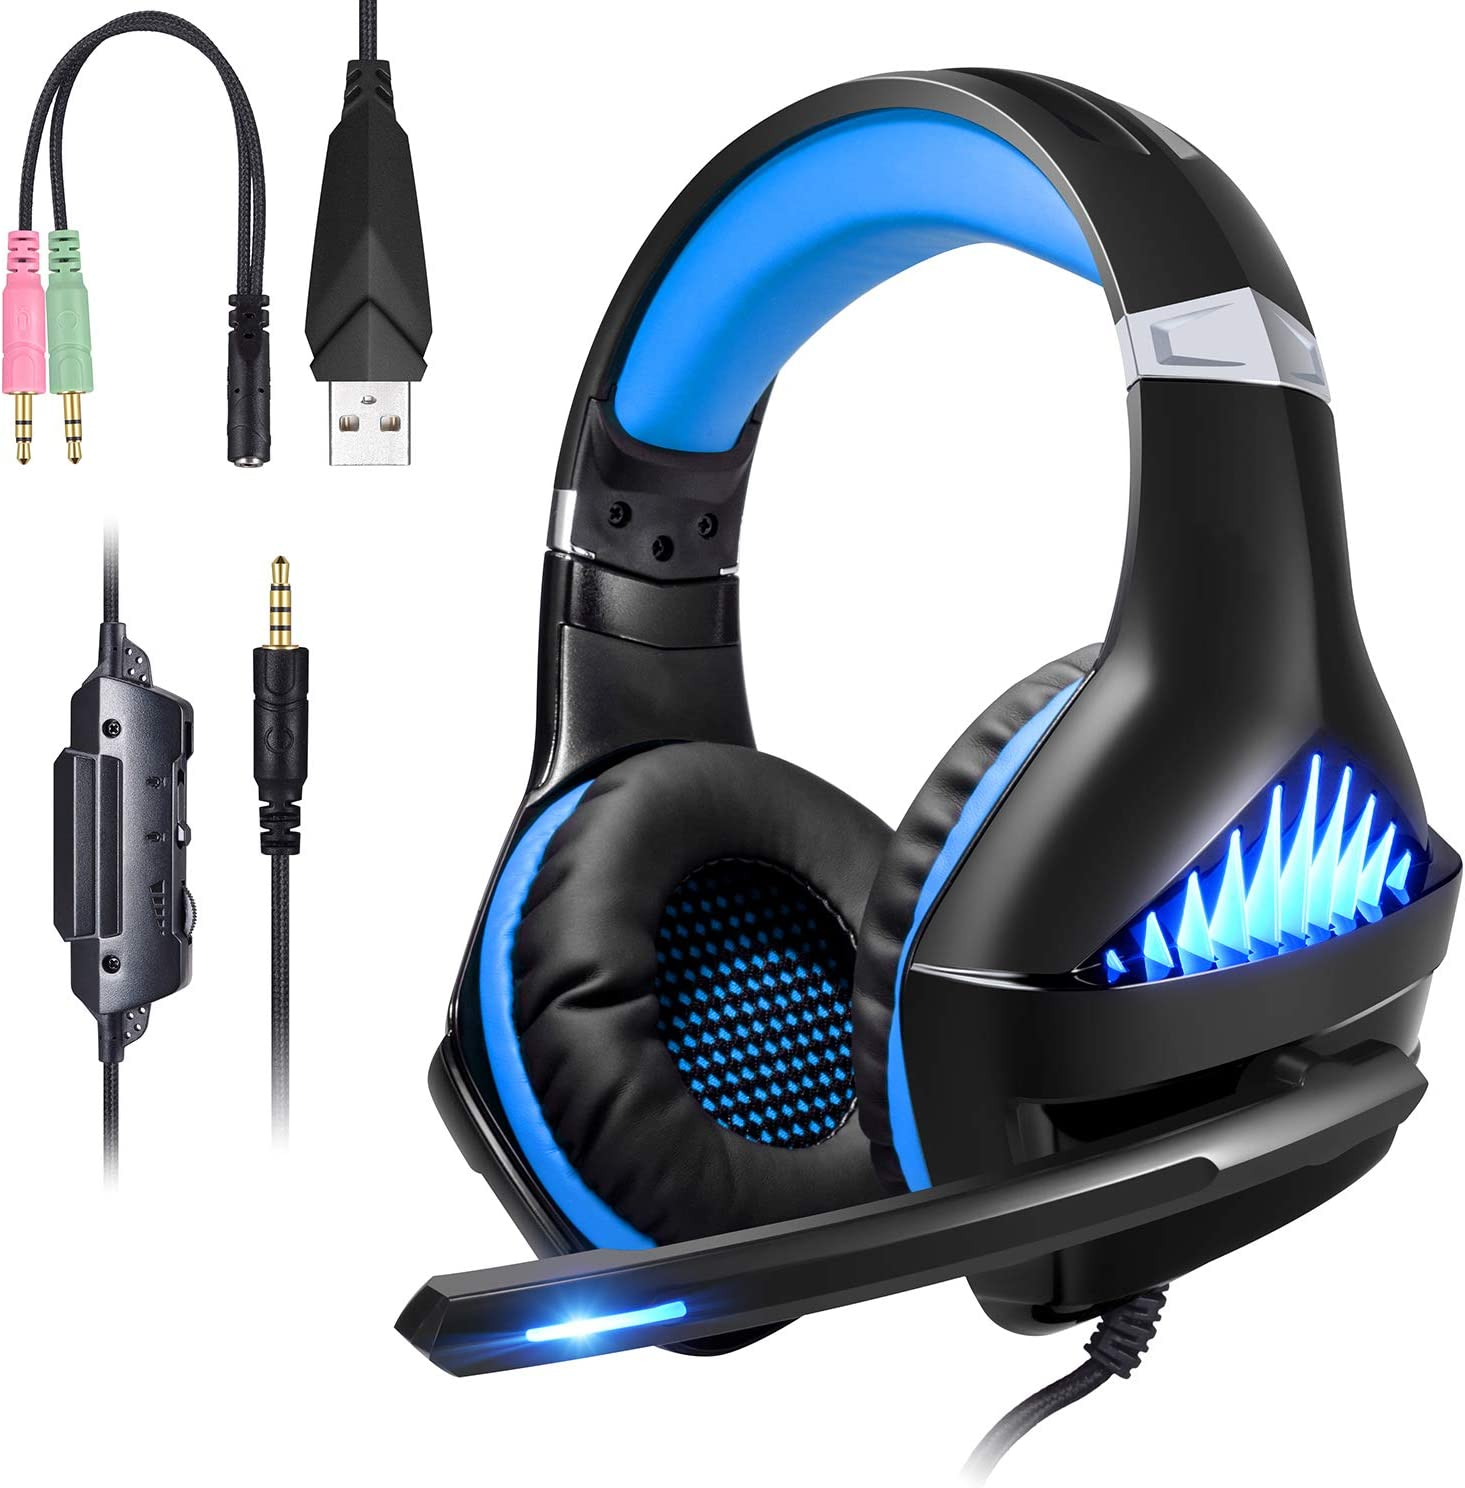 Samoleus Gaming Auriculares con Microfono, Cascos Gaming PS4 PC Xbox One, Cascos Gamer, Headset Cascos Jack 3.5mm, Luz LED con Switch, Laptop, Playstation 4 (Upgraded Red)